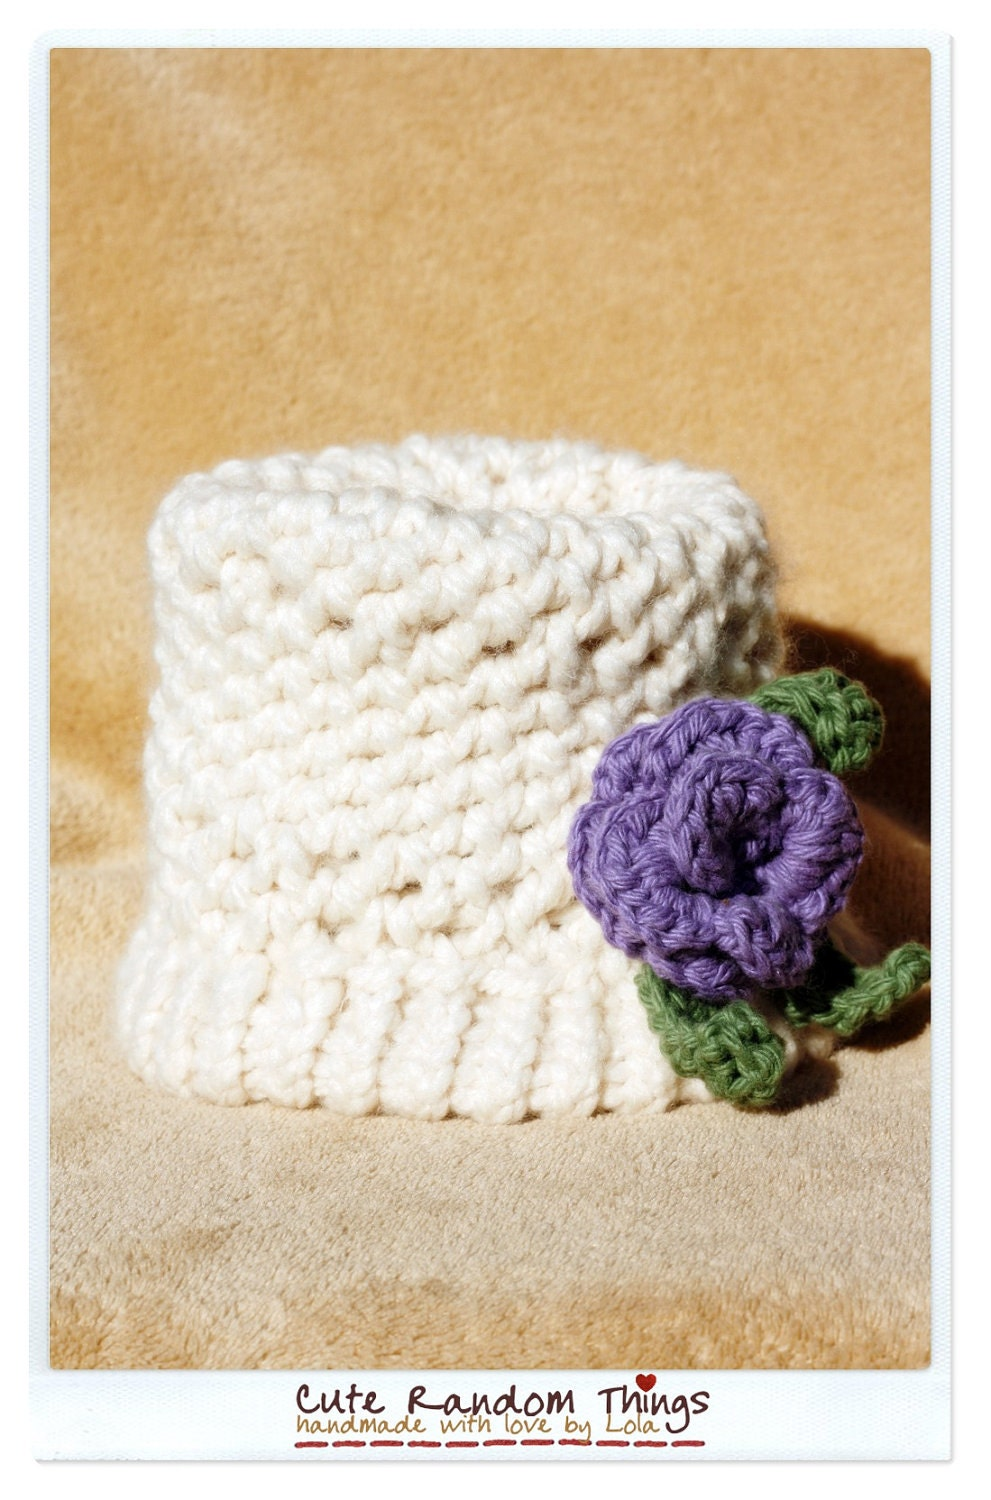 Elegant lady with purple flower - Knitted baby hat